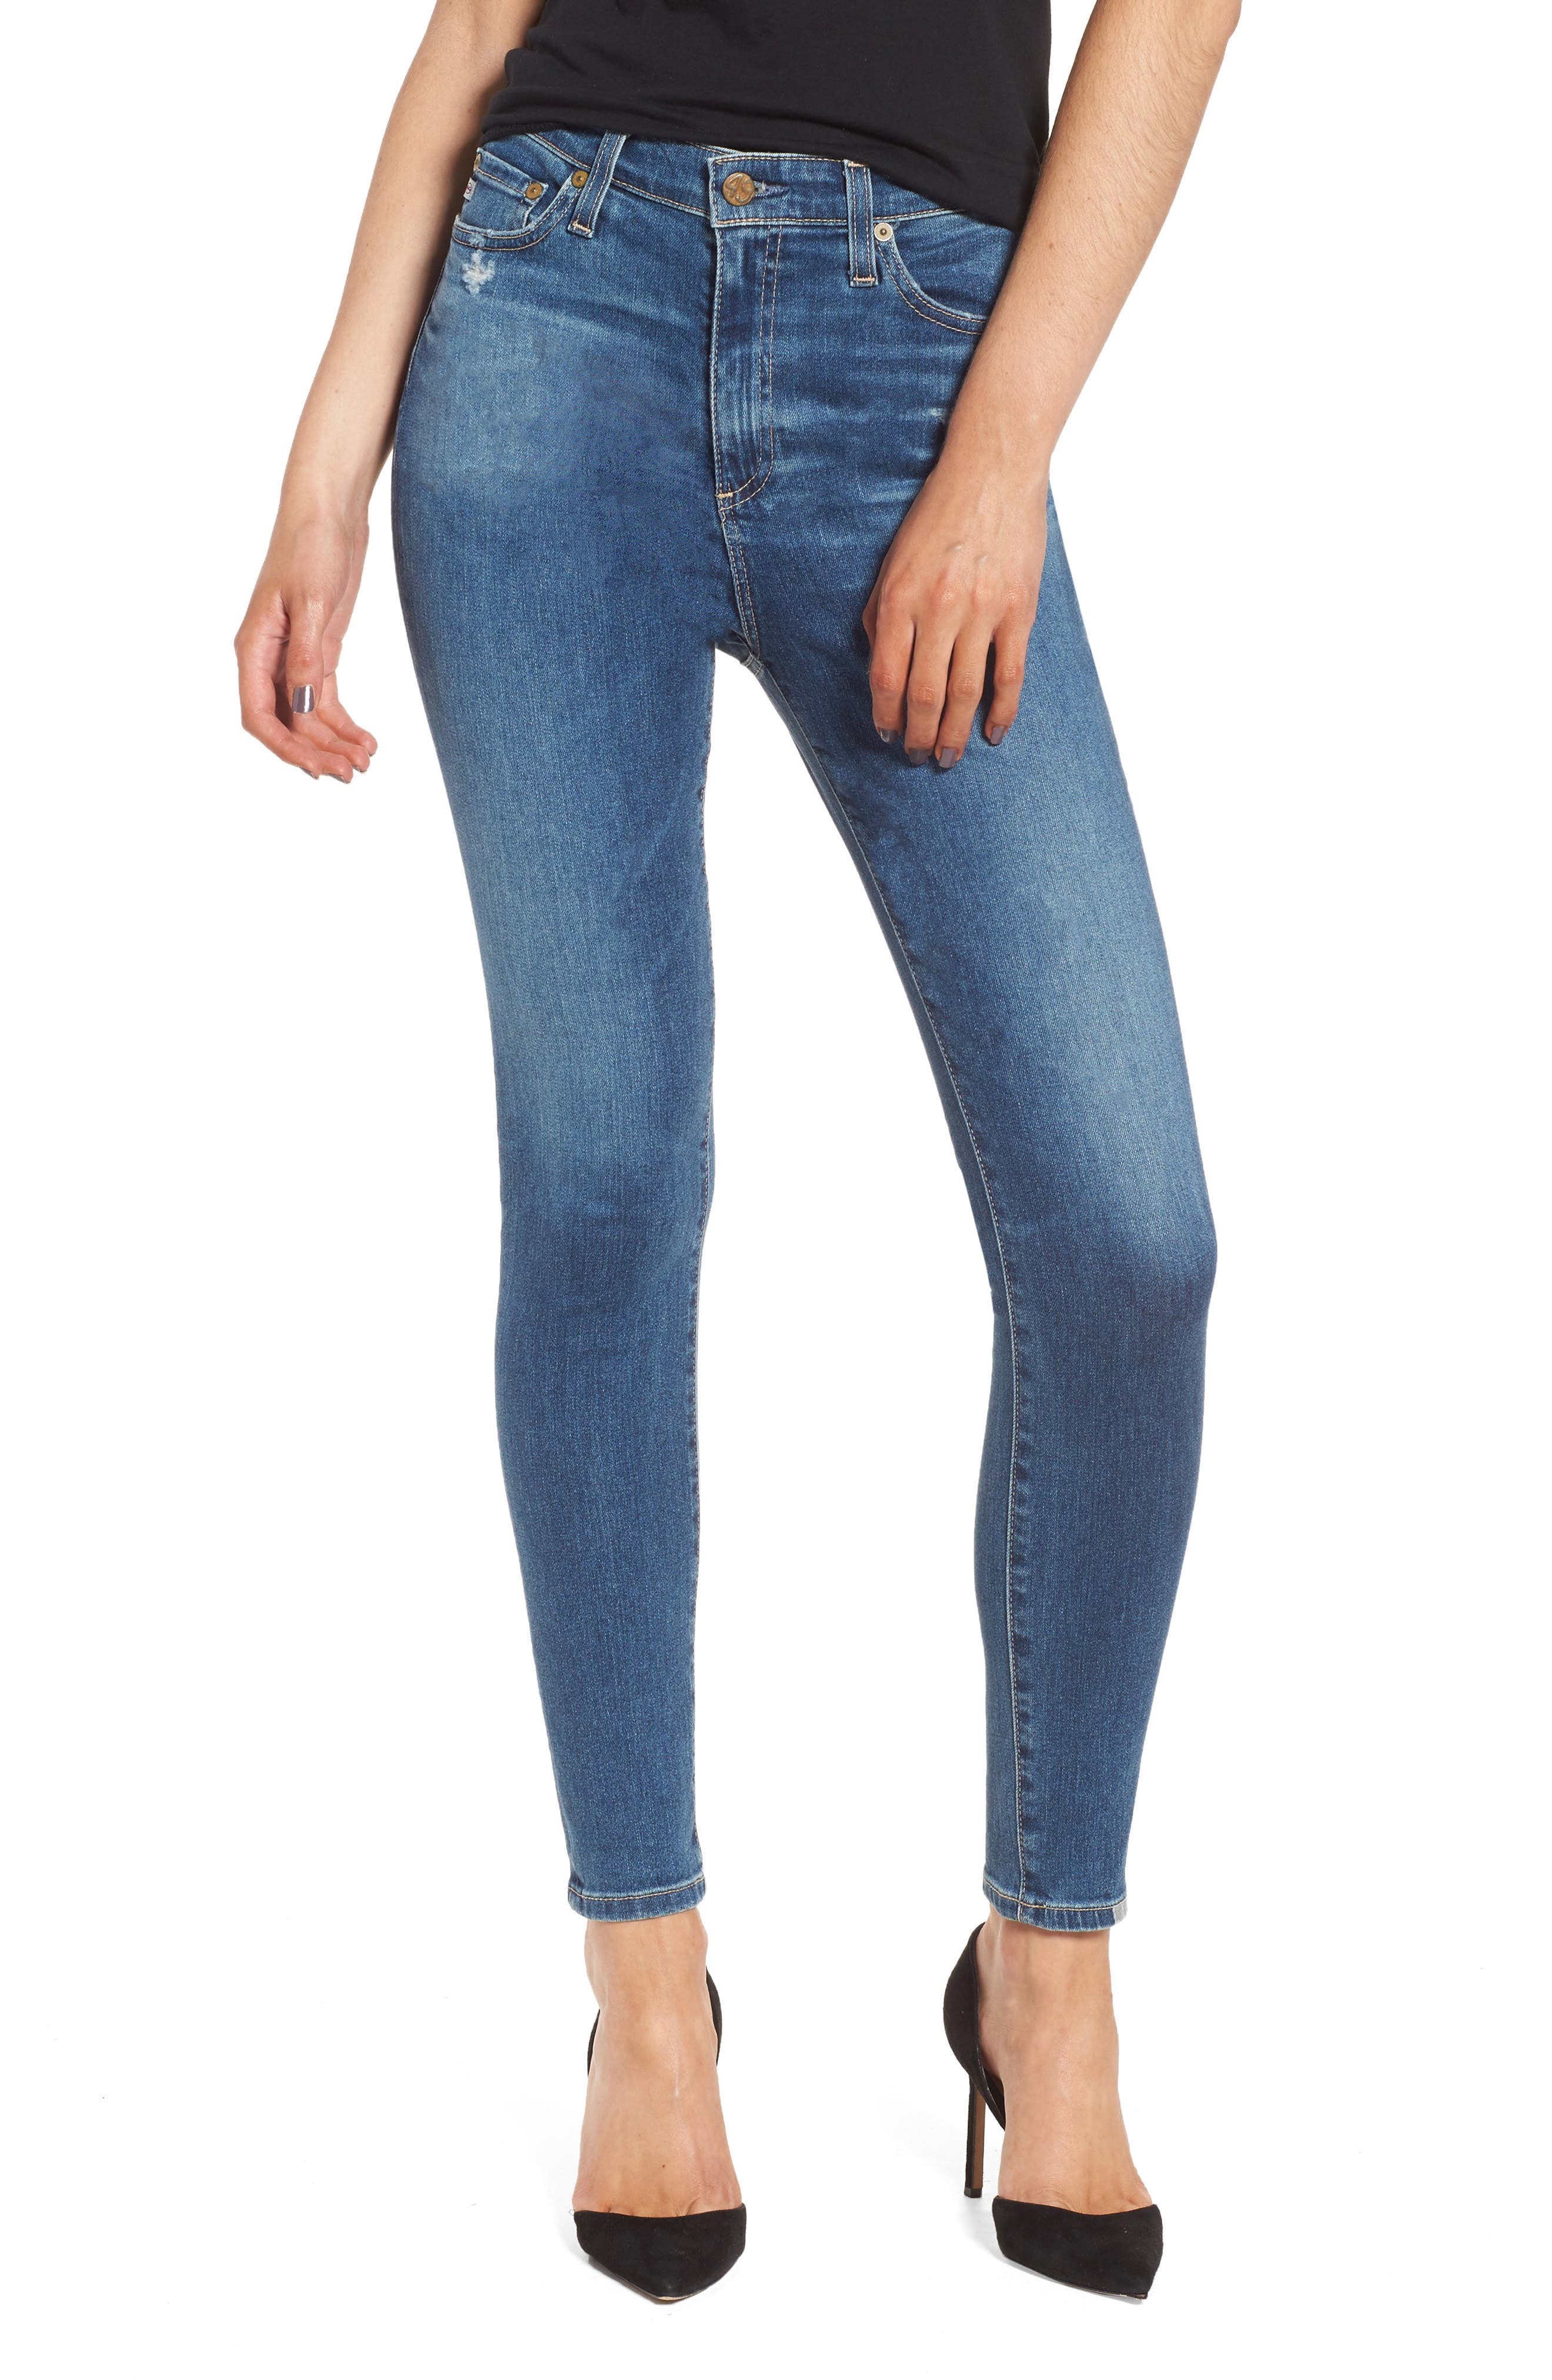 Mila Ankle Skinny Jeans,                         Main,                         color, 8 Years Infamy